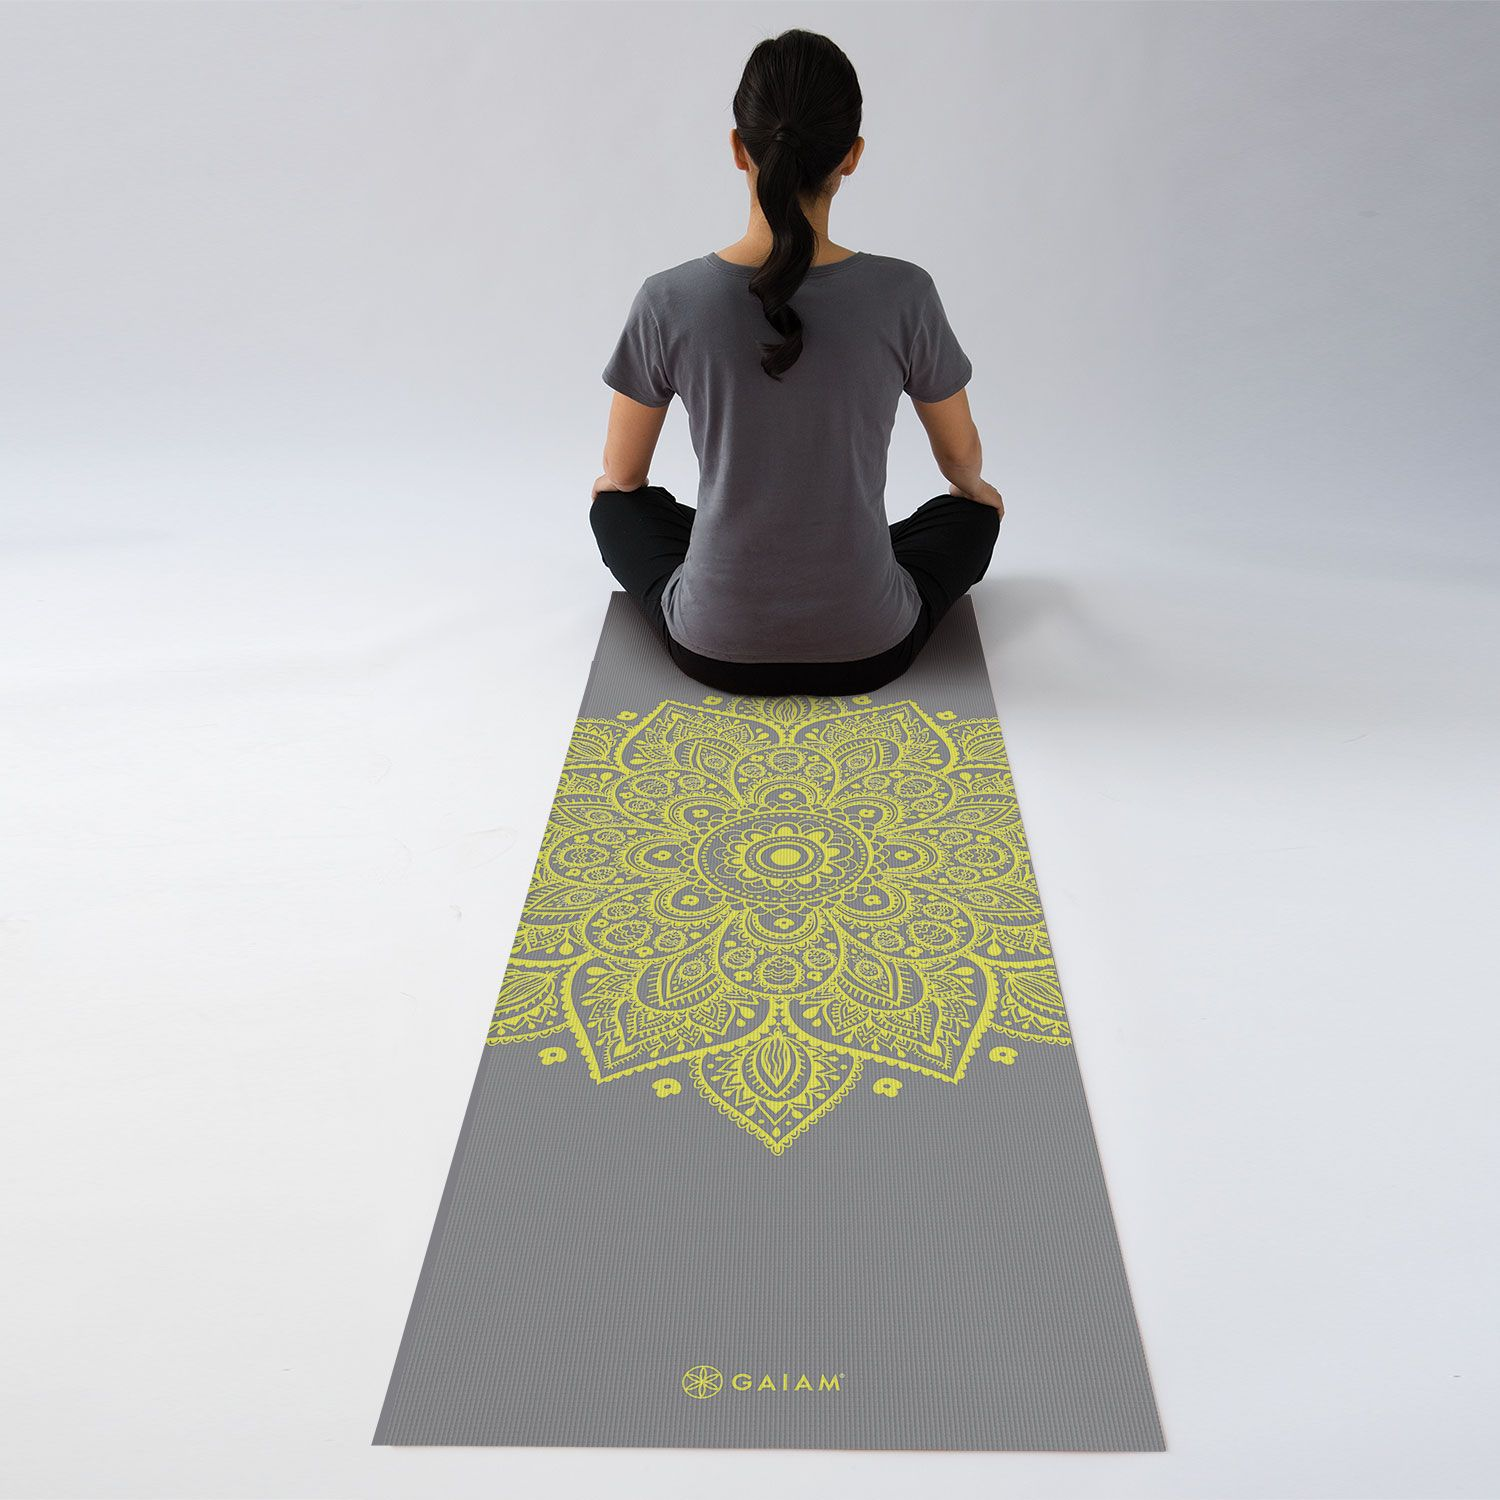 Our Citron Sundial Yoga Mat Offers A Non Slip Grip And 5mm